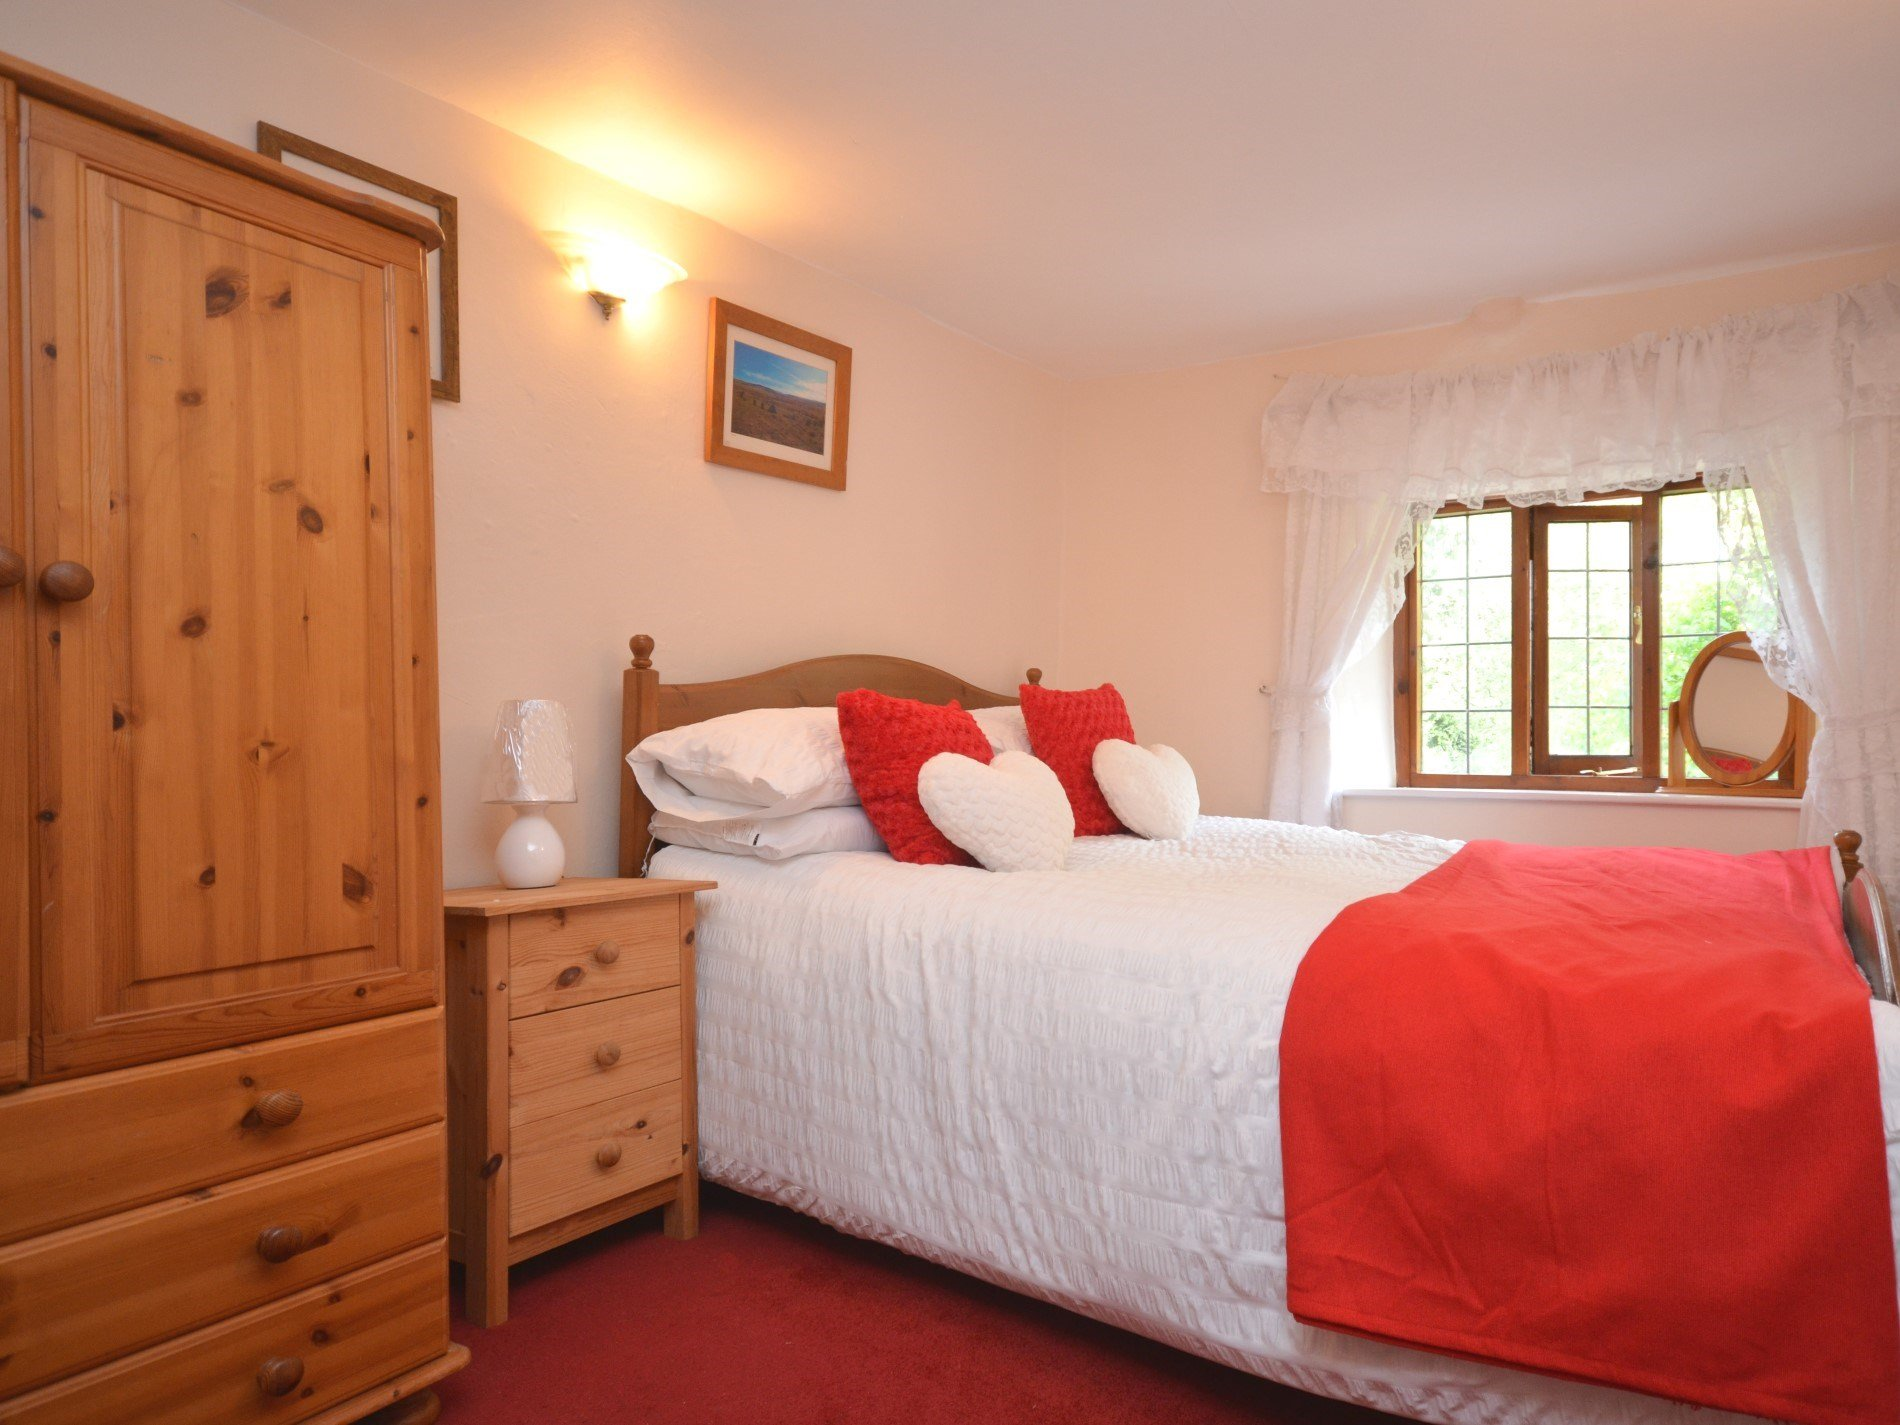 4 Bedroom Cottage in Okehampton, Devon